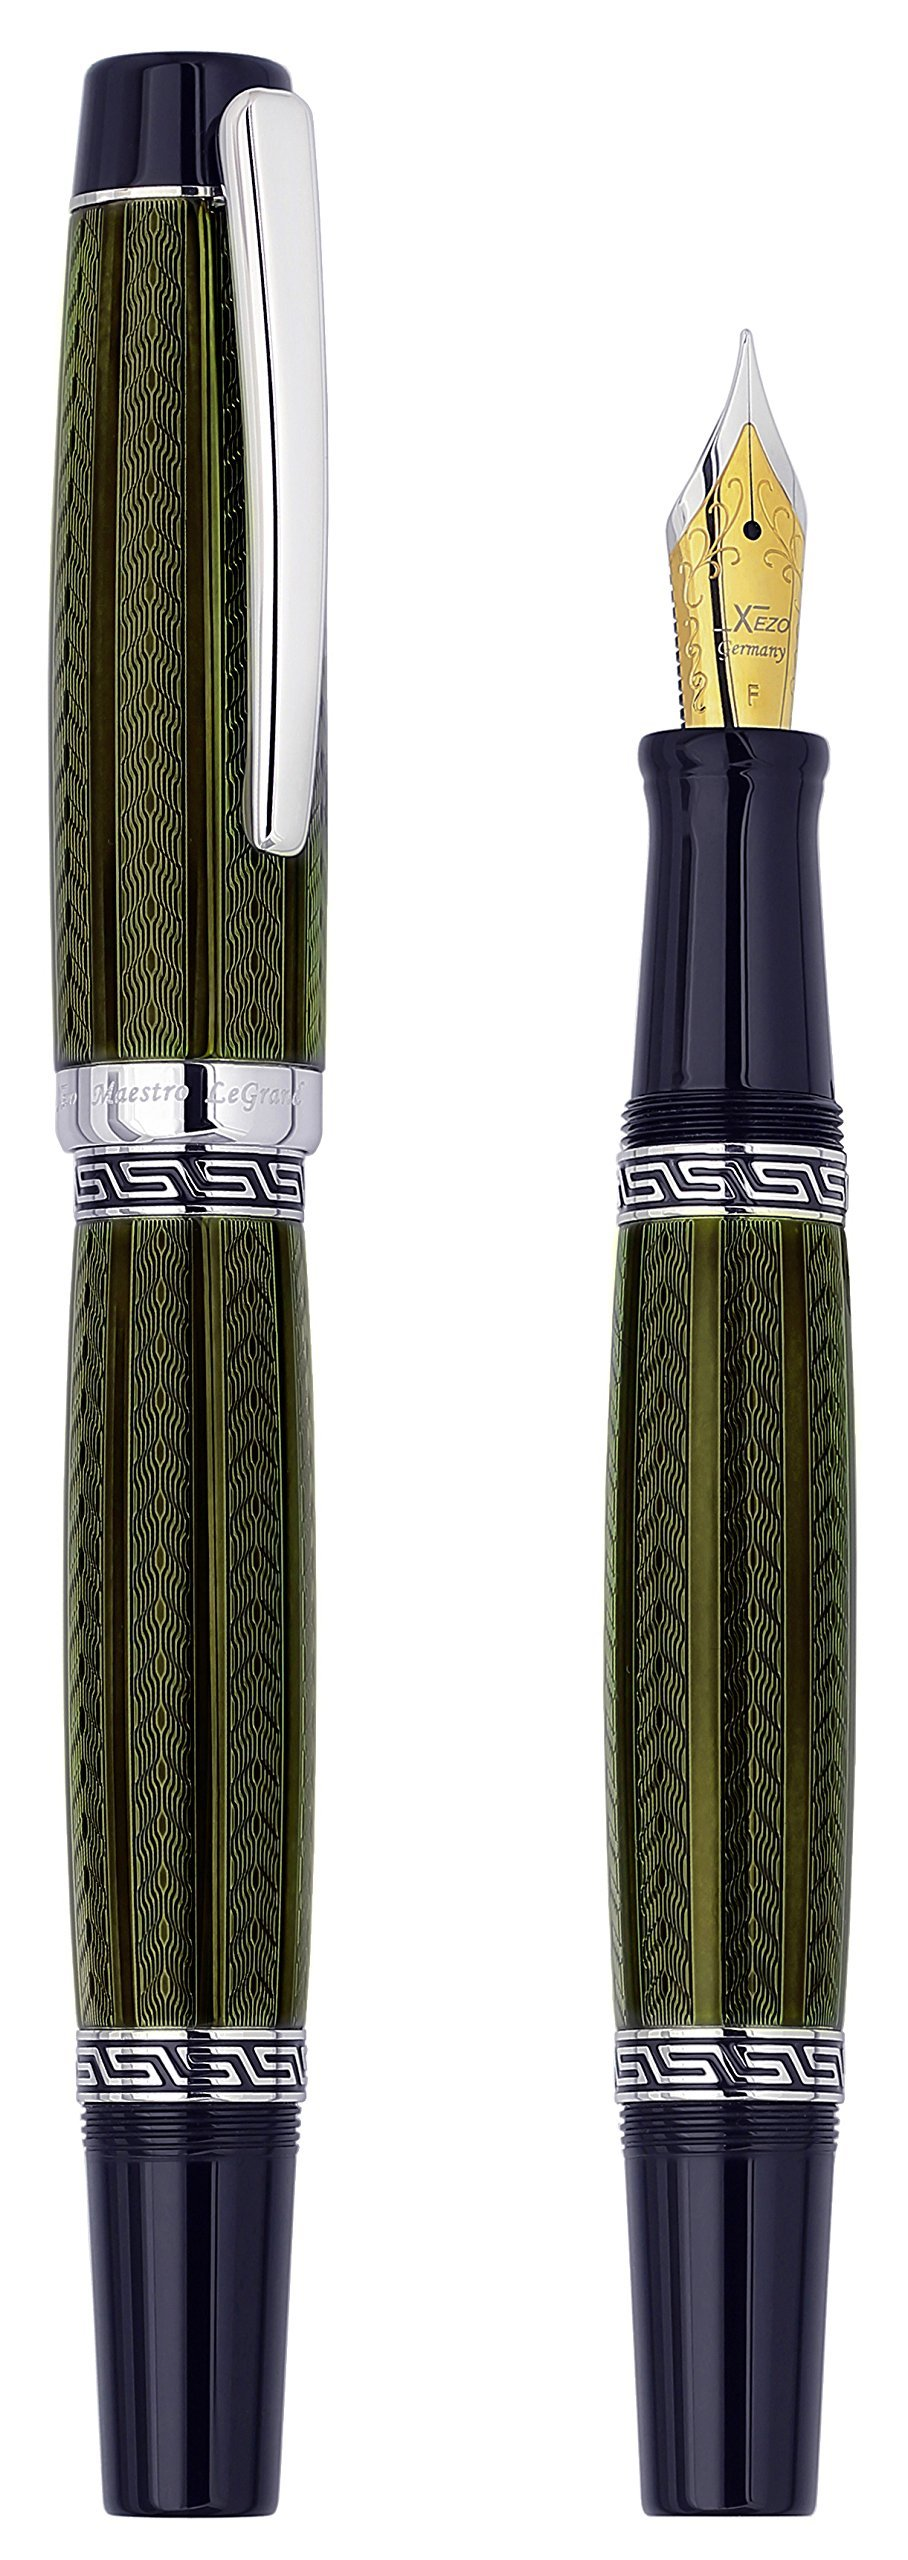 Xezo Maestro LeGrand Diamond Cut, Lacquered, Platinum Plated Fine Point Fountain Pen in Moldavite Color